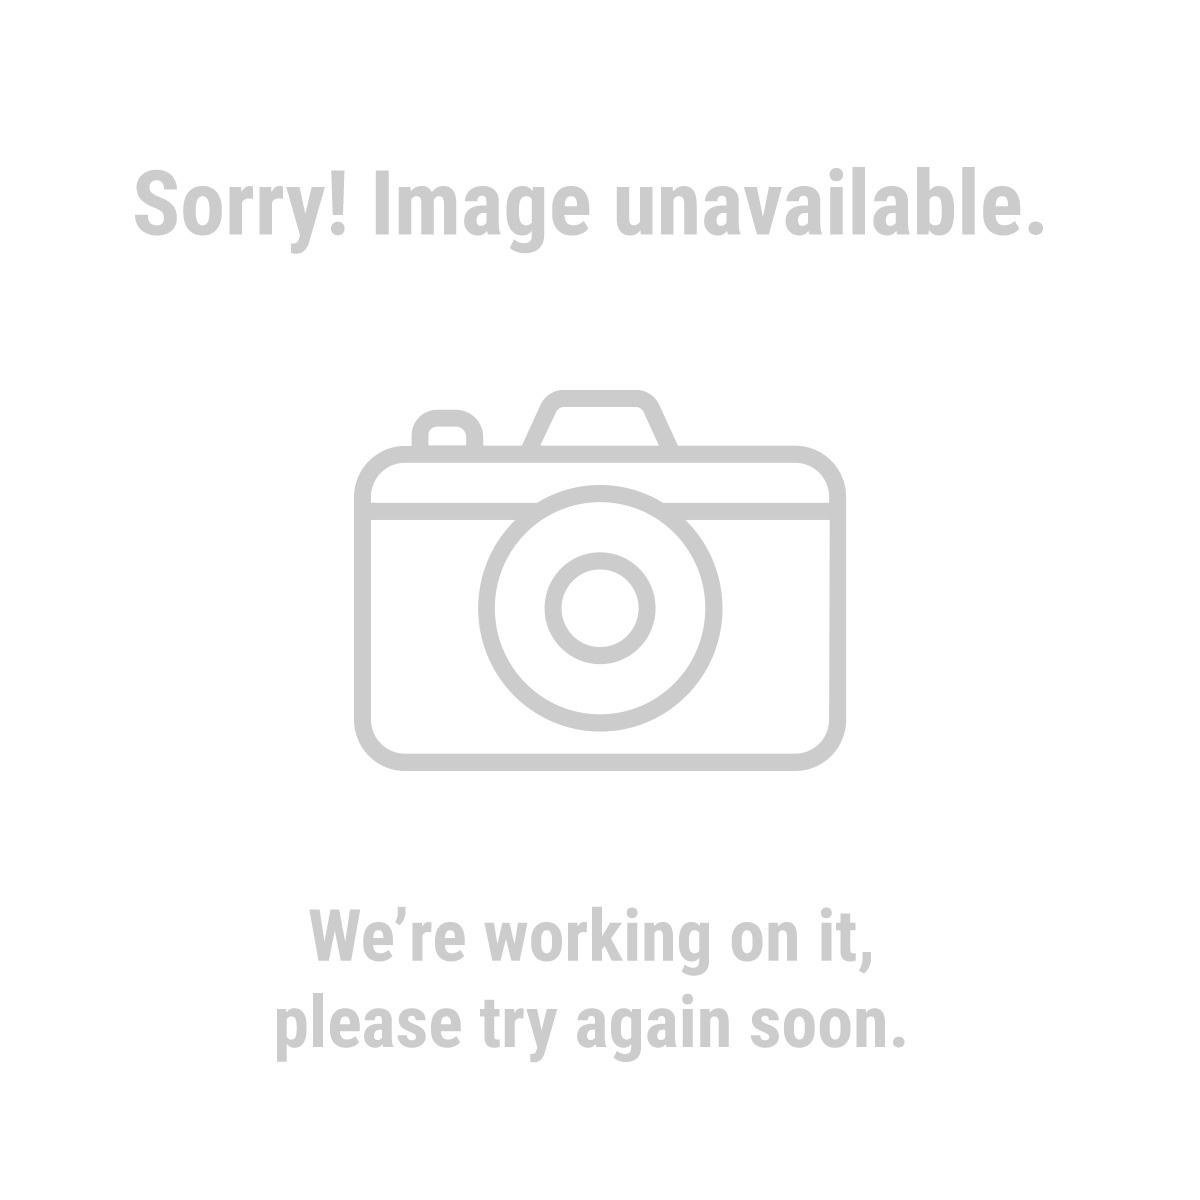 Bunker Hill Security® 62368 4 Channel Wireless Surveillance System with 2 Cameras